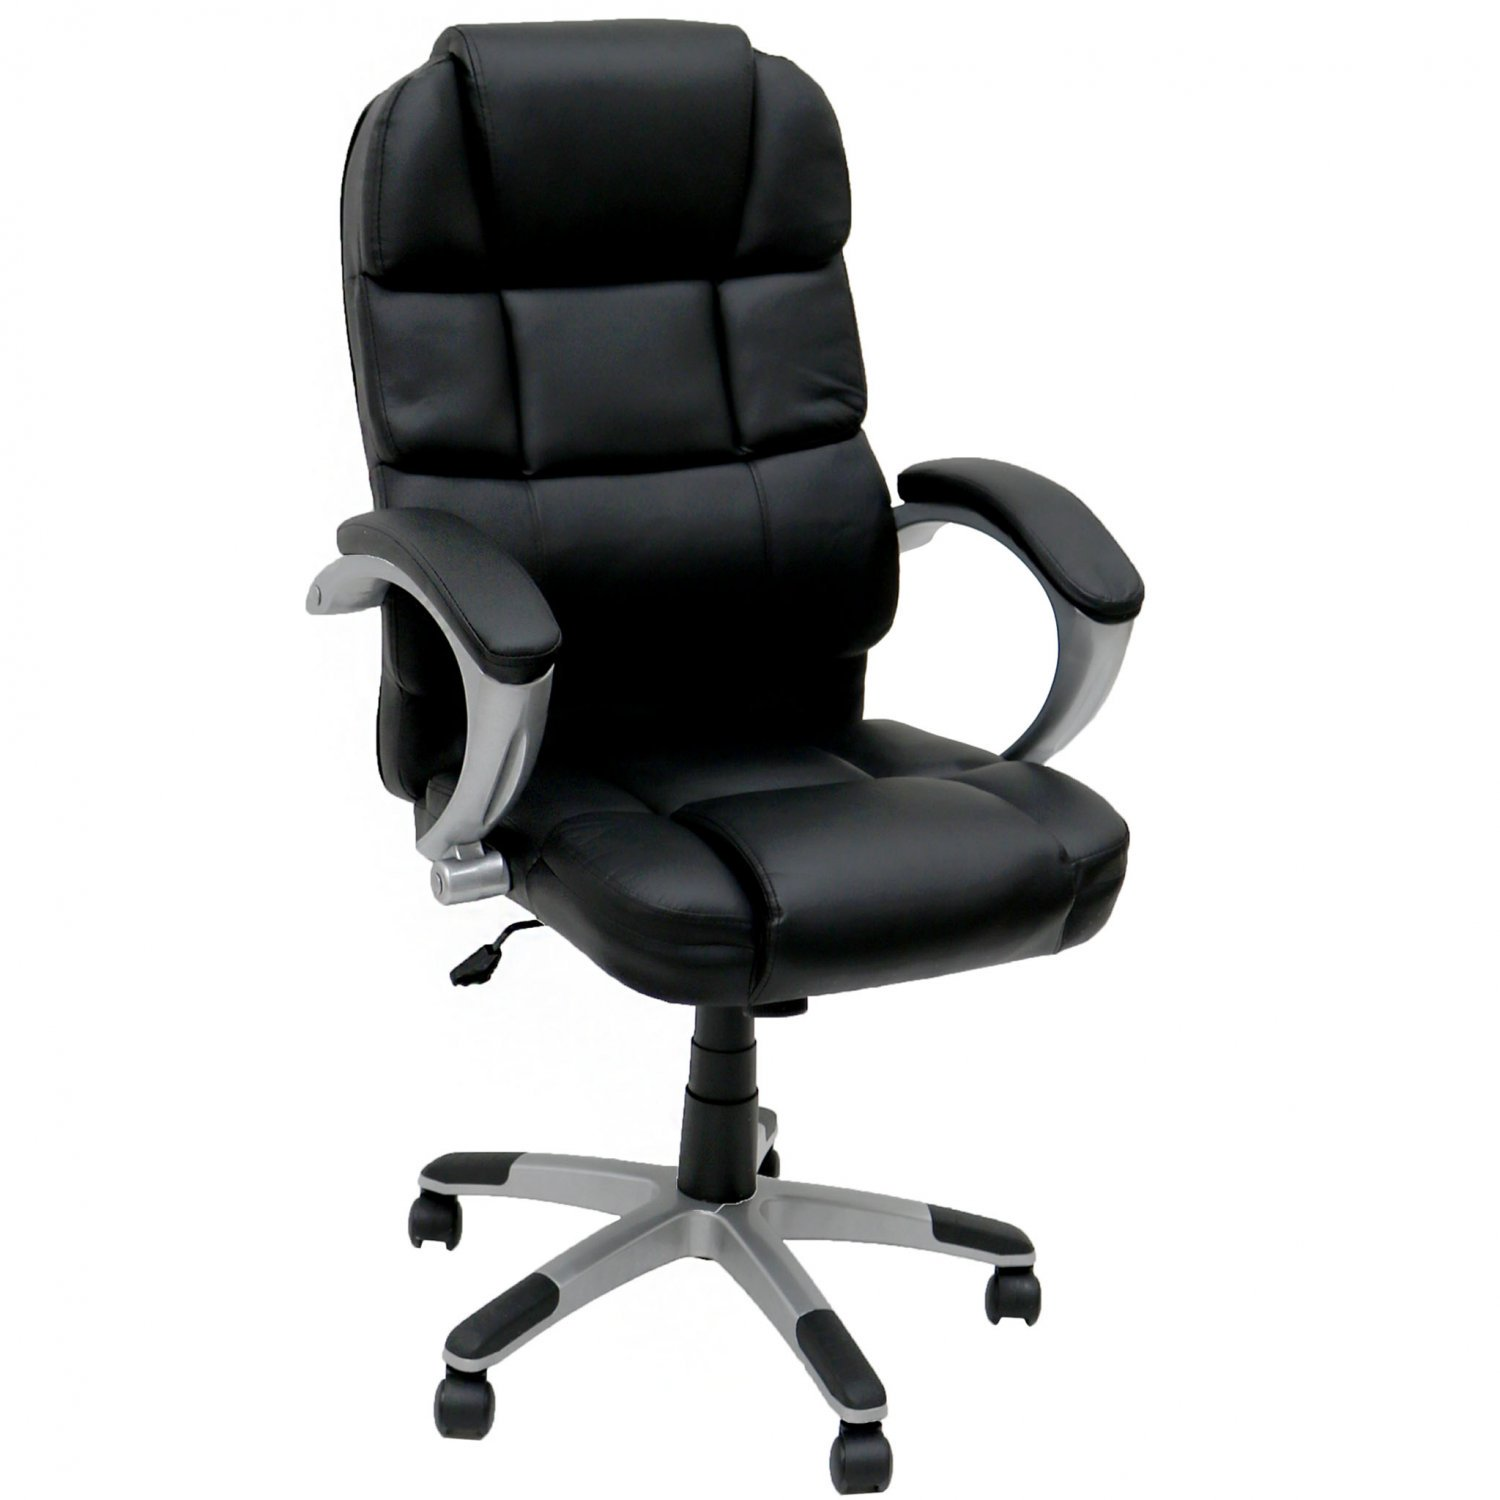 Luxury Designer Computer Office Chair - Black